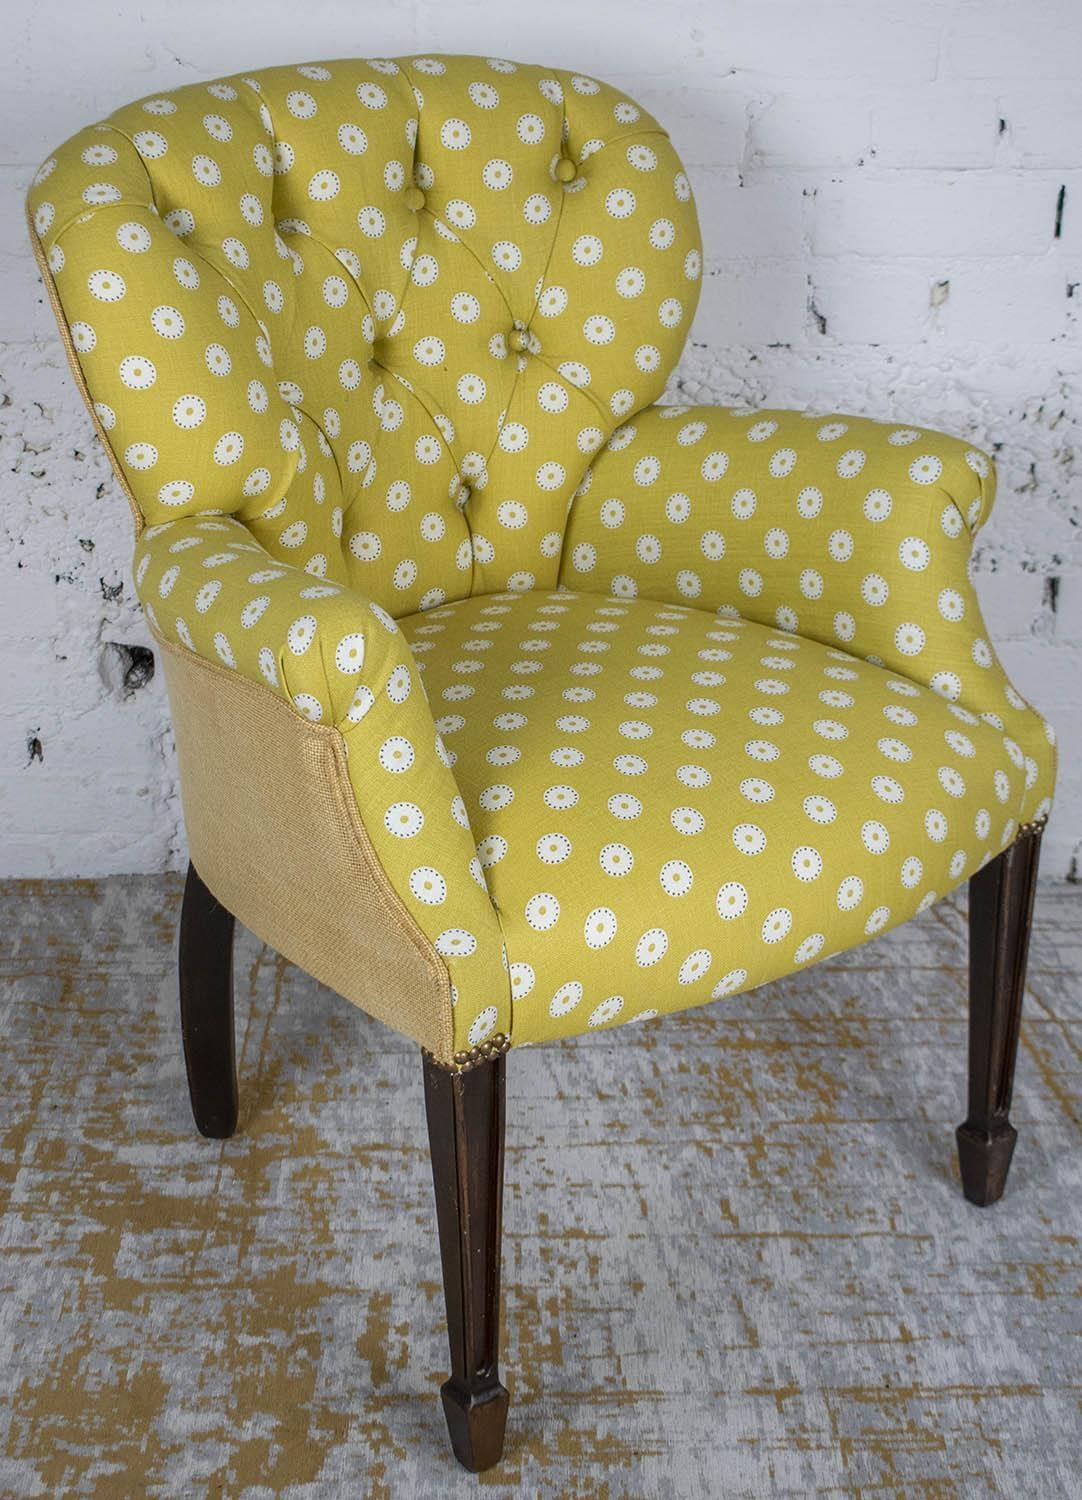 ARMCHAIR, Georgian style in yellow and white dot patterned fabric, 86cm H x 66cm x 66cm.